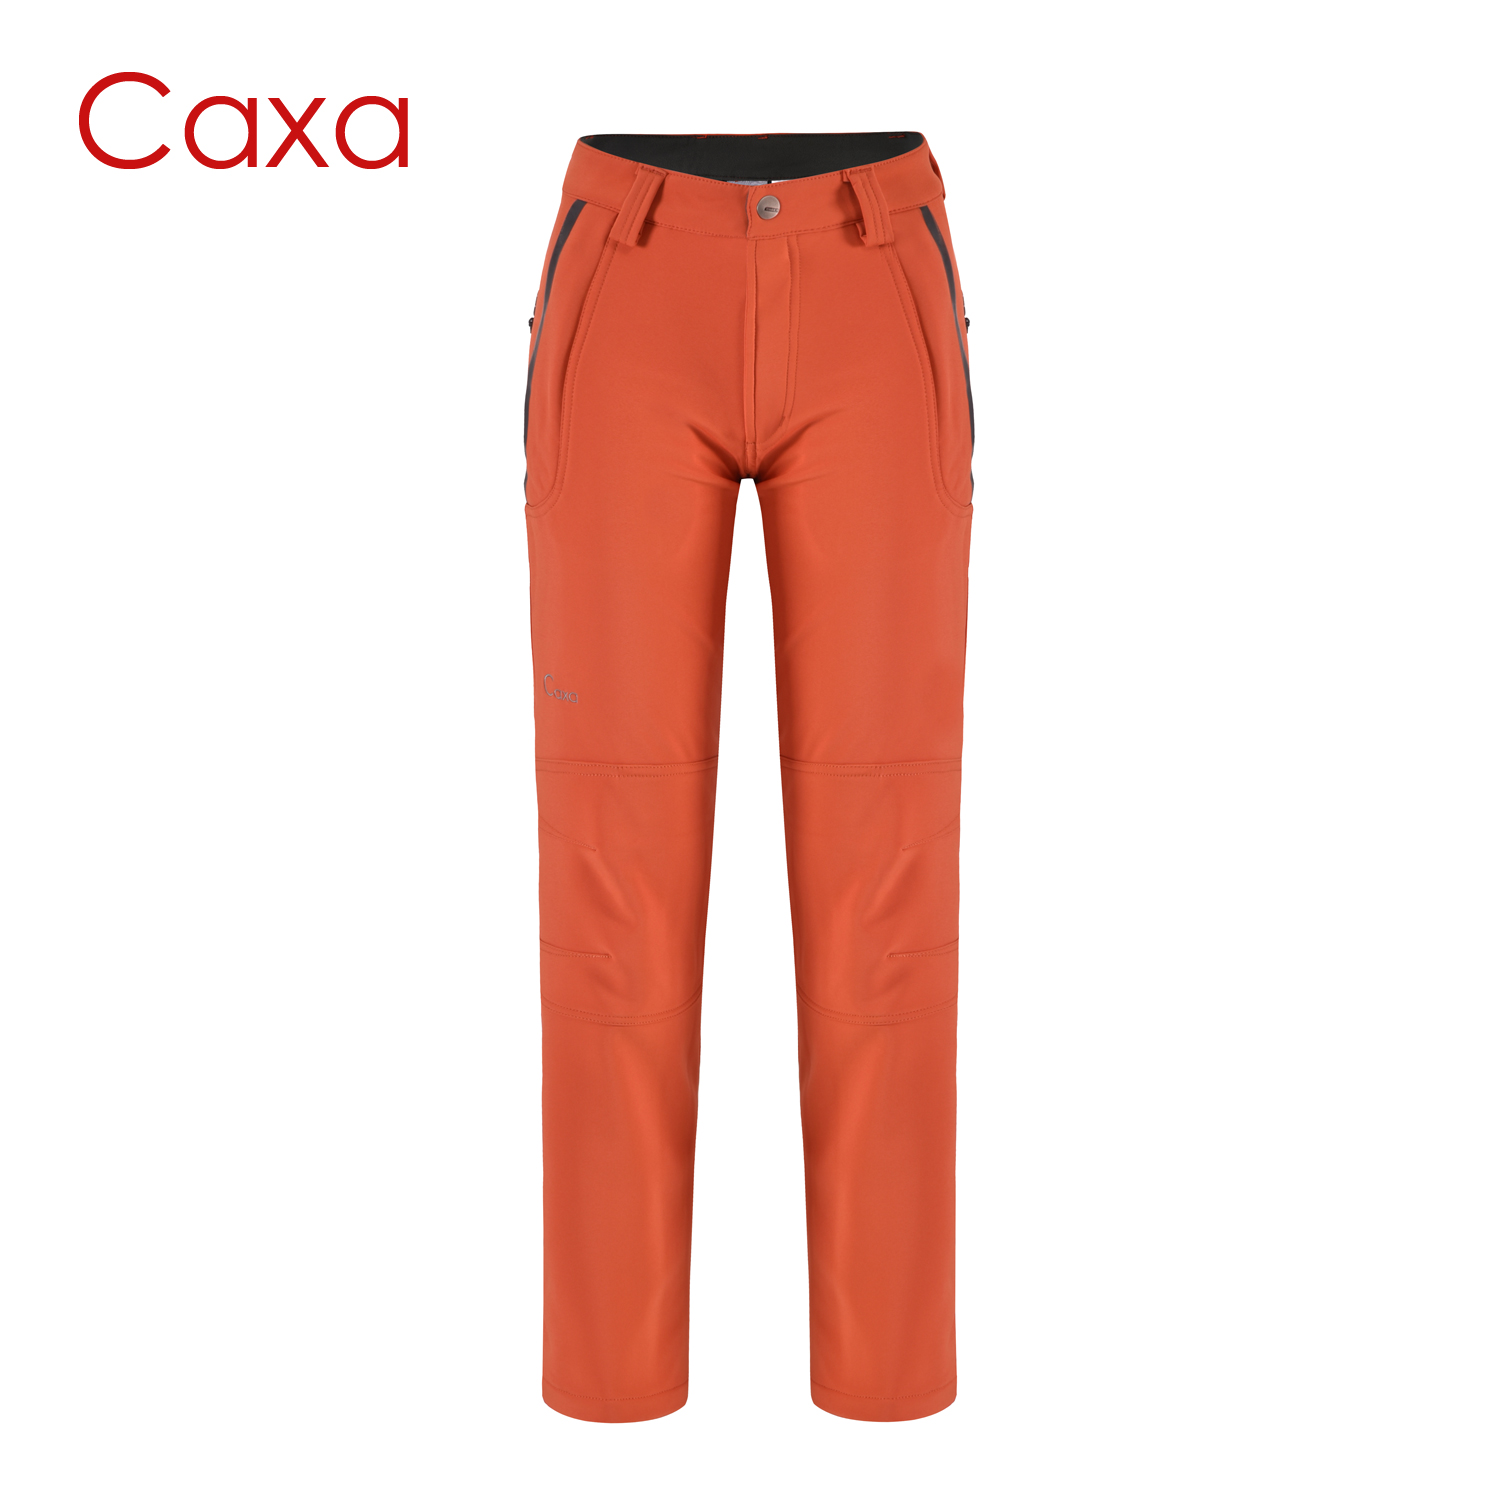 Caxa women's outdoor stormtrousers waterproof, breathable and cold-proof SKI TROUSERS